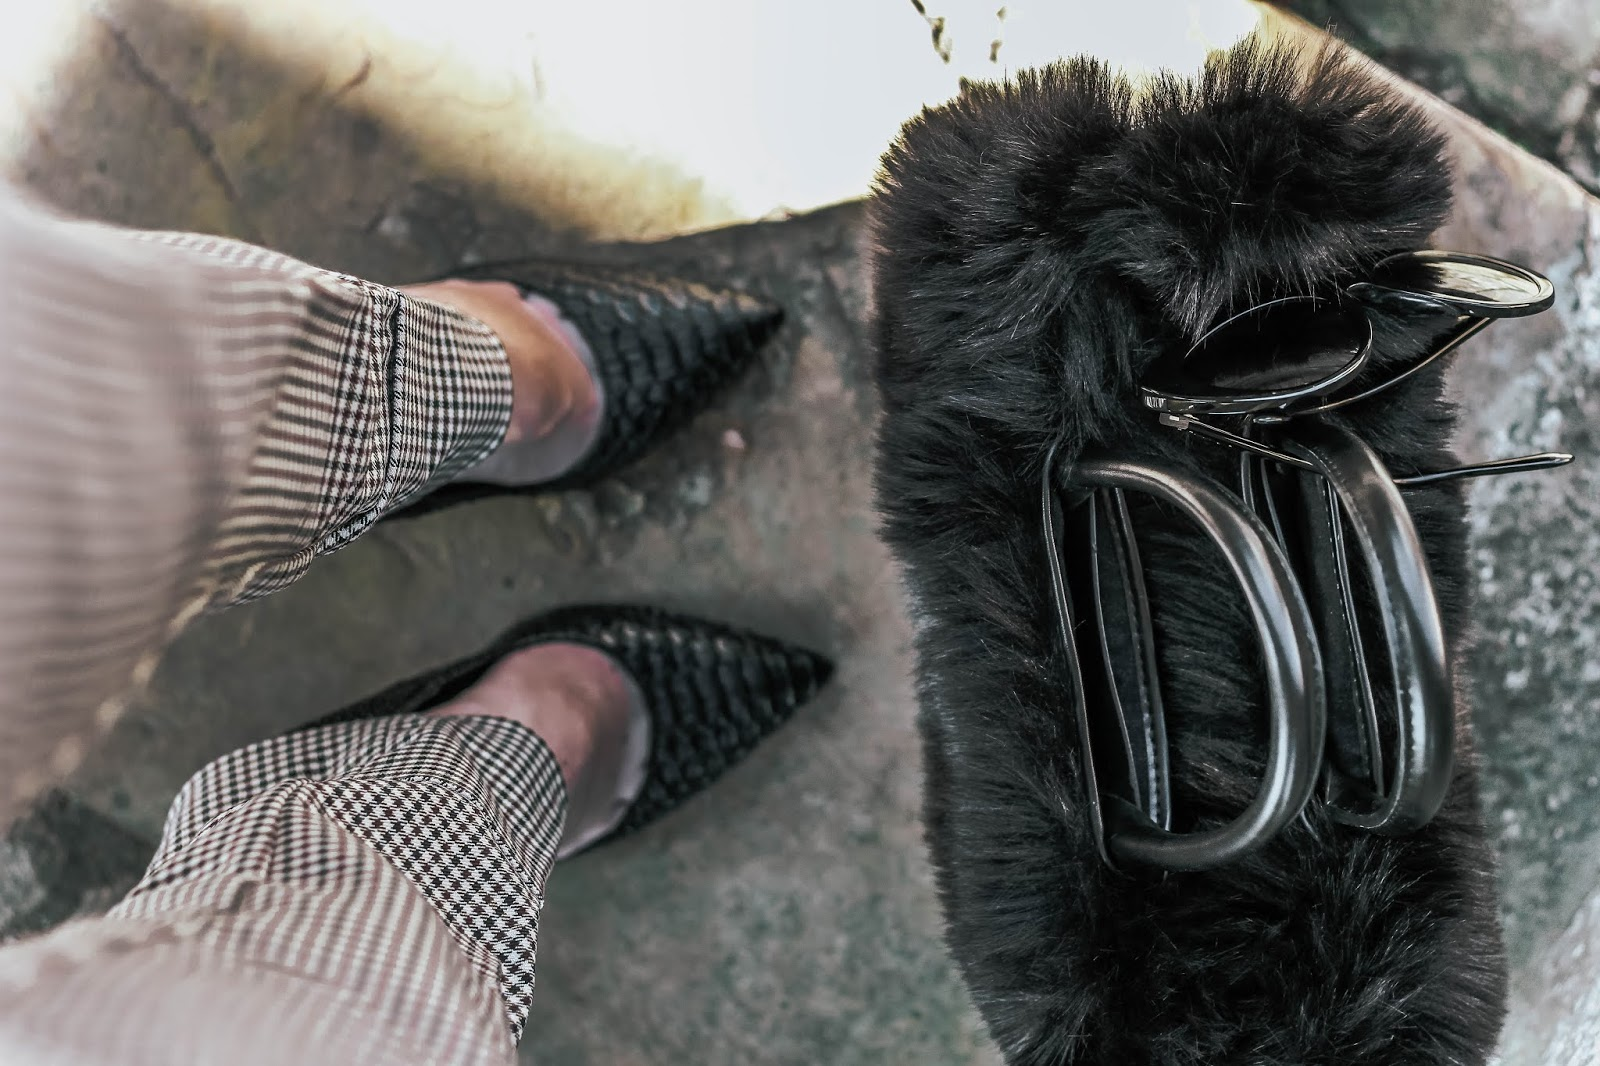 Zara Black Faux Fur Tote Handbag